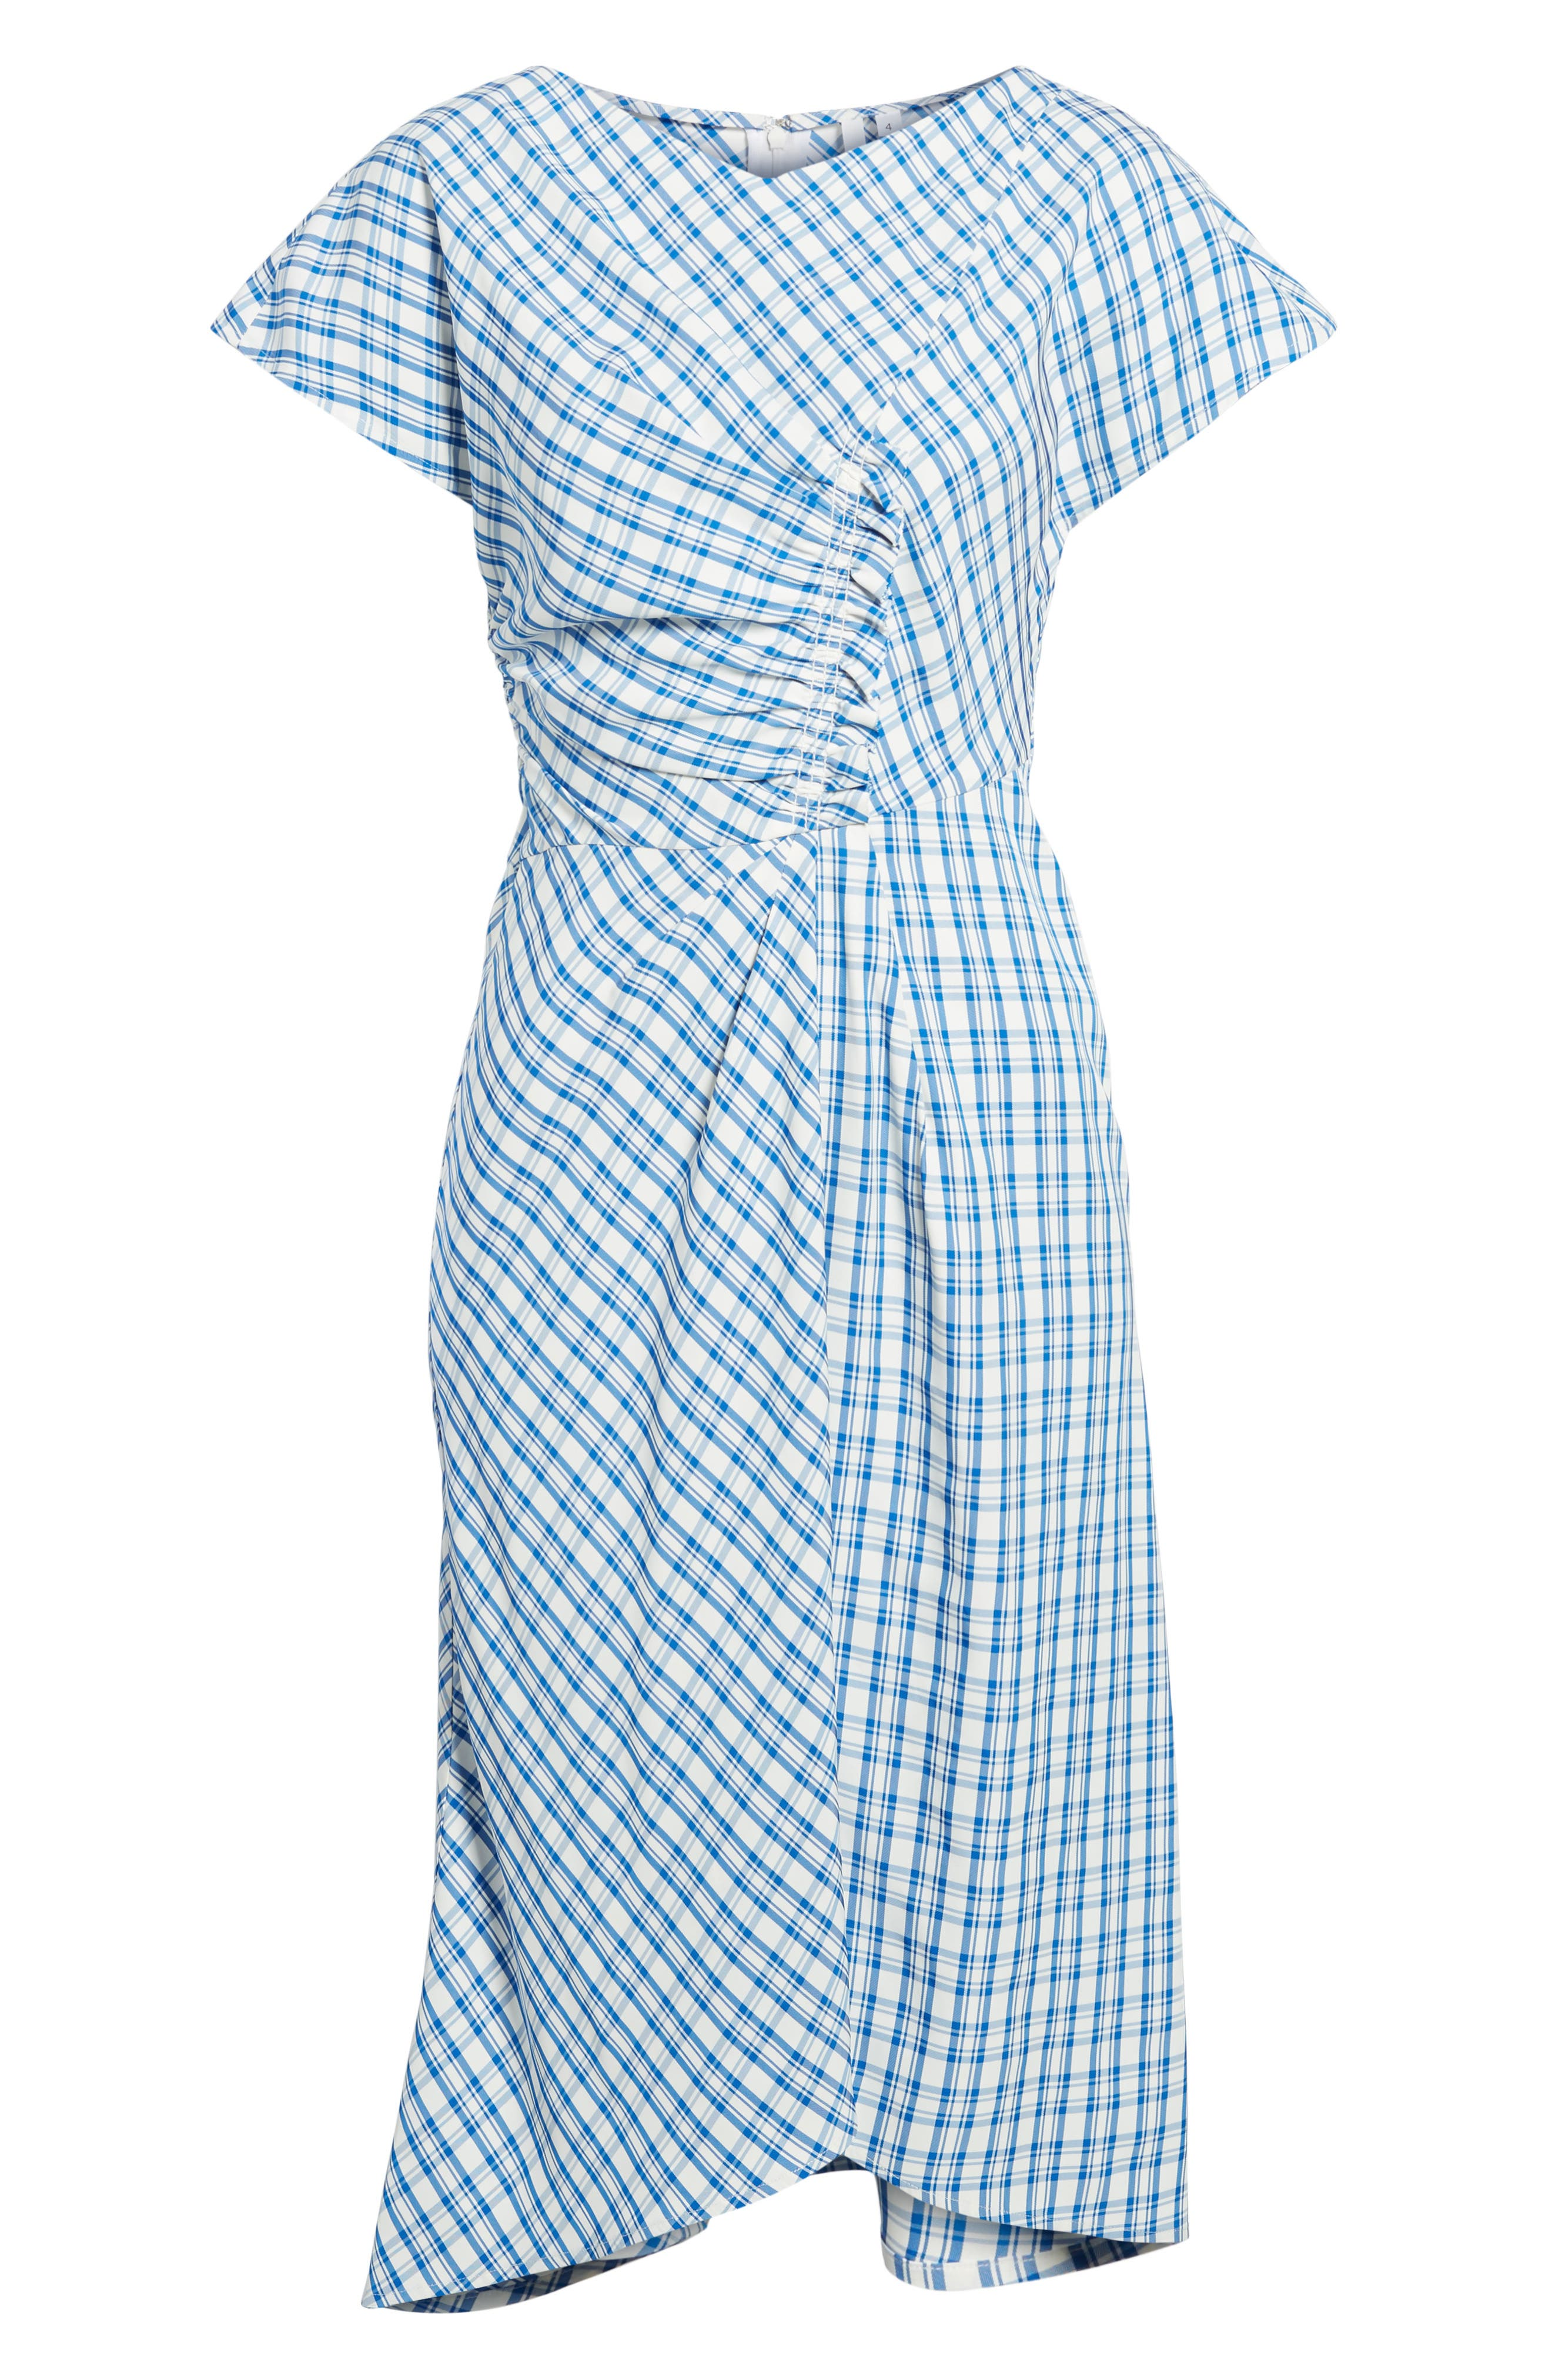 Ruched Check Midi Dress,                             Alternate thumbnail 6, color,                             420